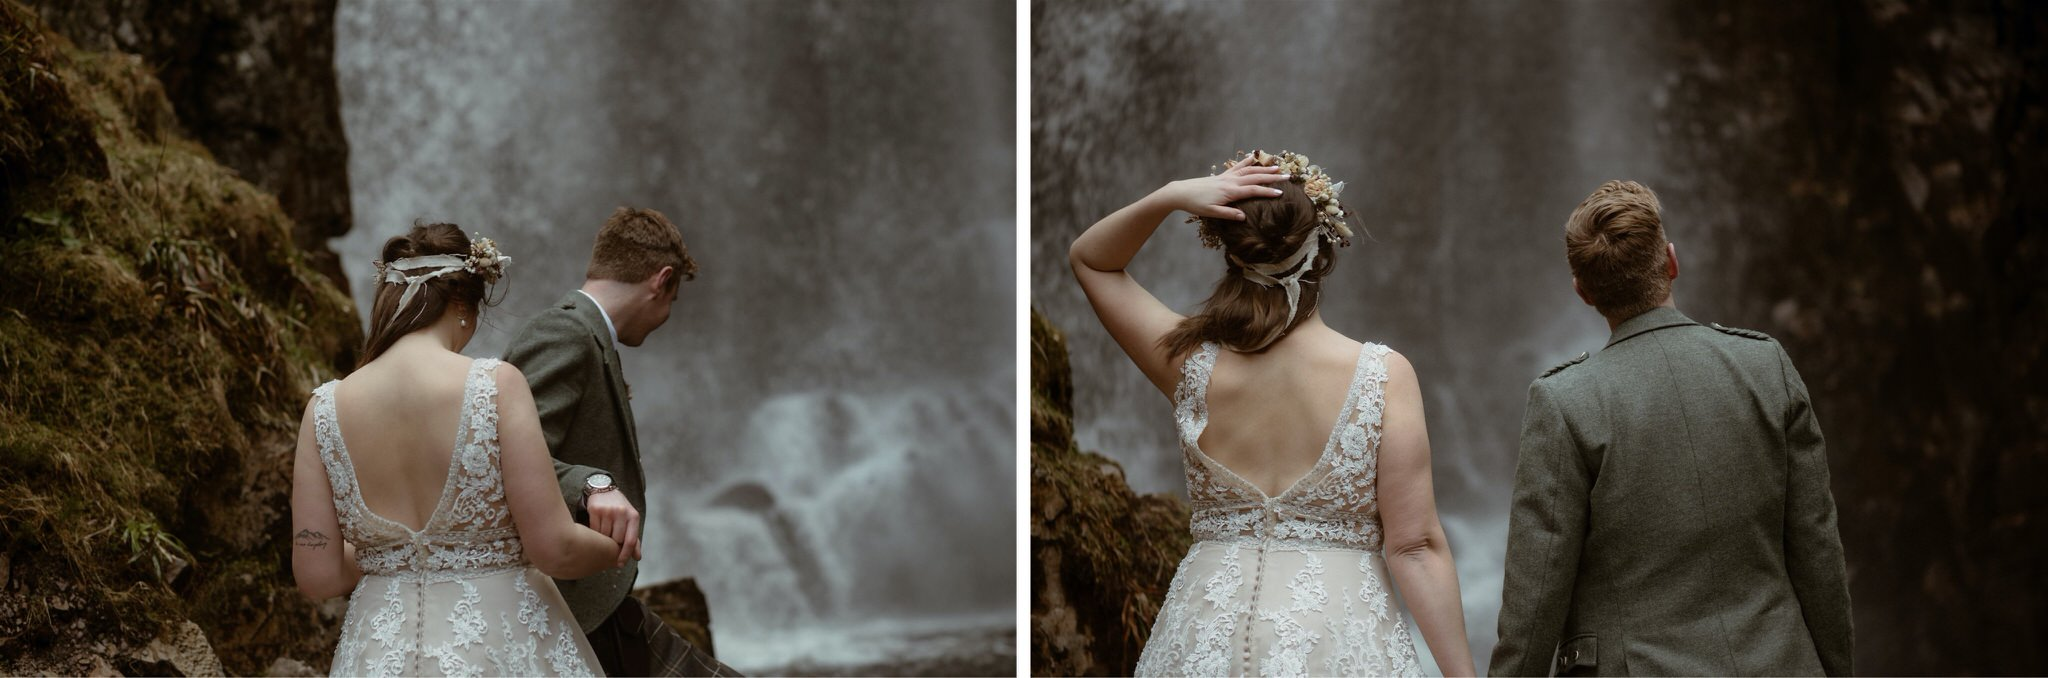 Bride and groom in front of a waterfall gorge after their Scotland elopement wedding in Assynt